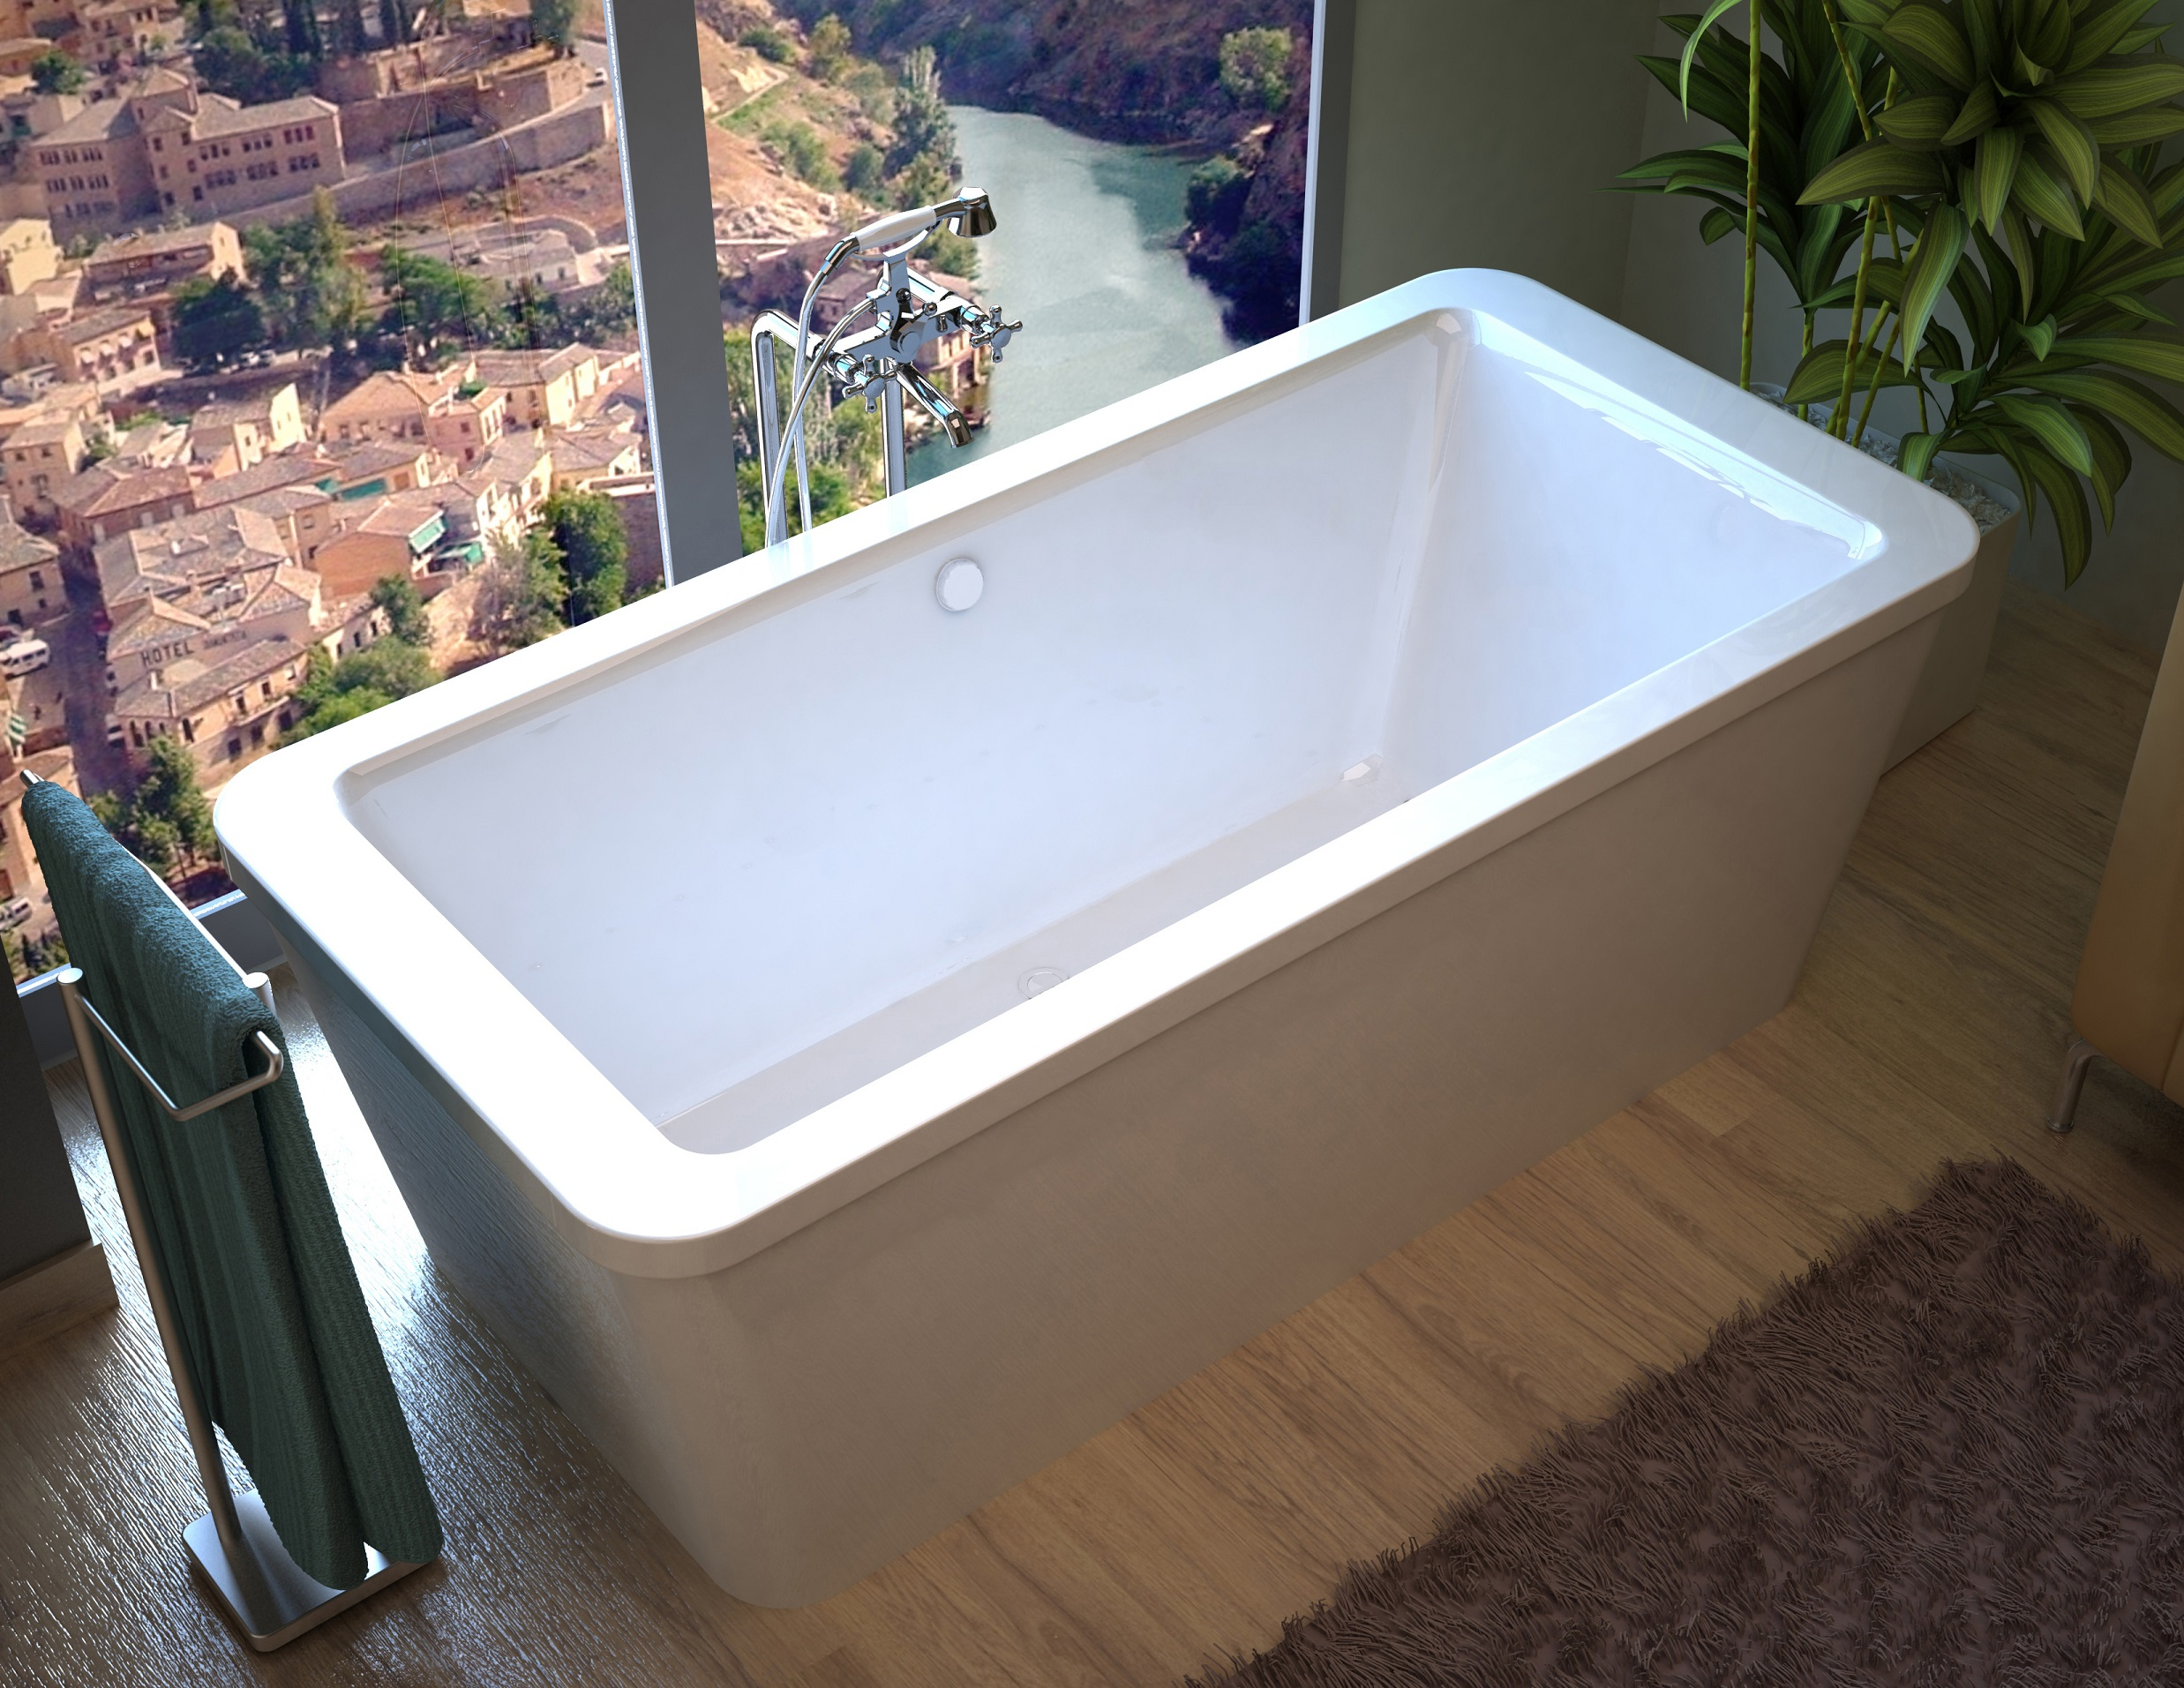 Venzi Aquilia 67 x 32 x 22 Rectangular Freestanding Bathtub with ...